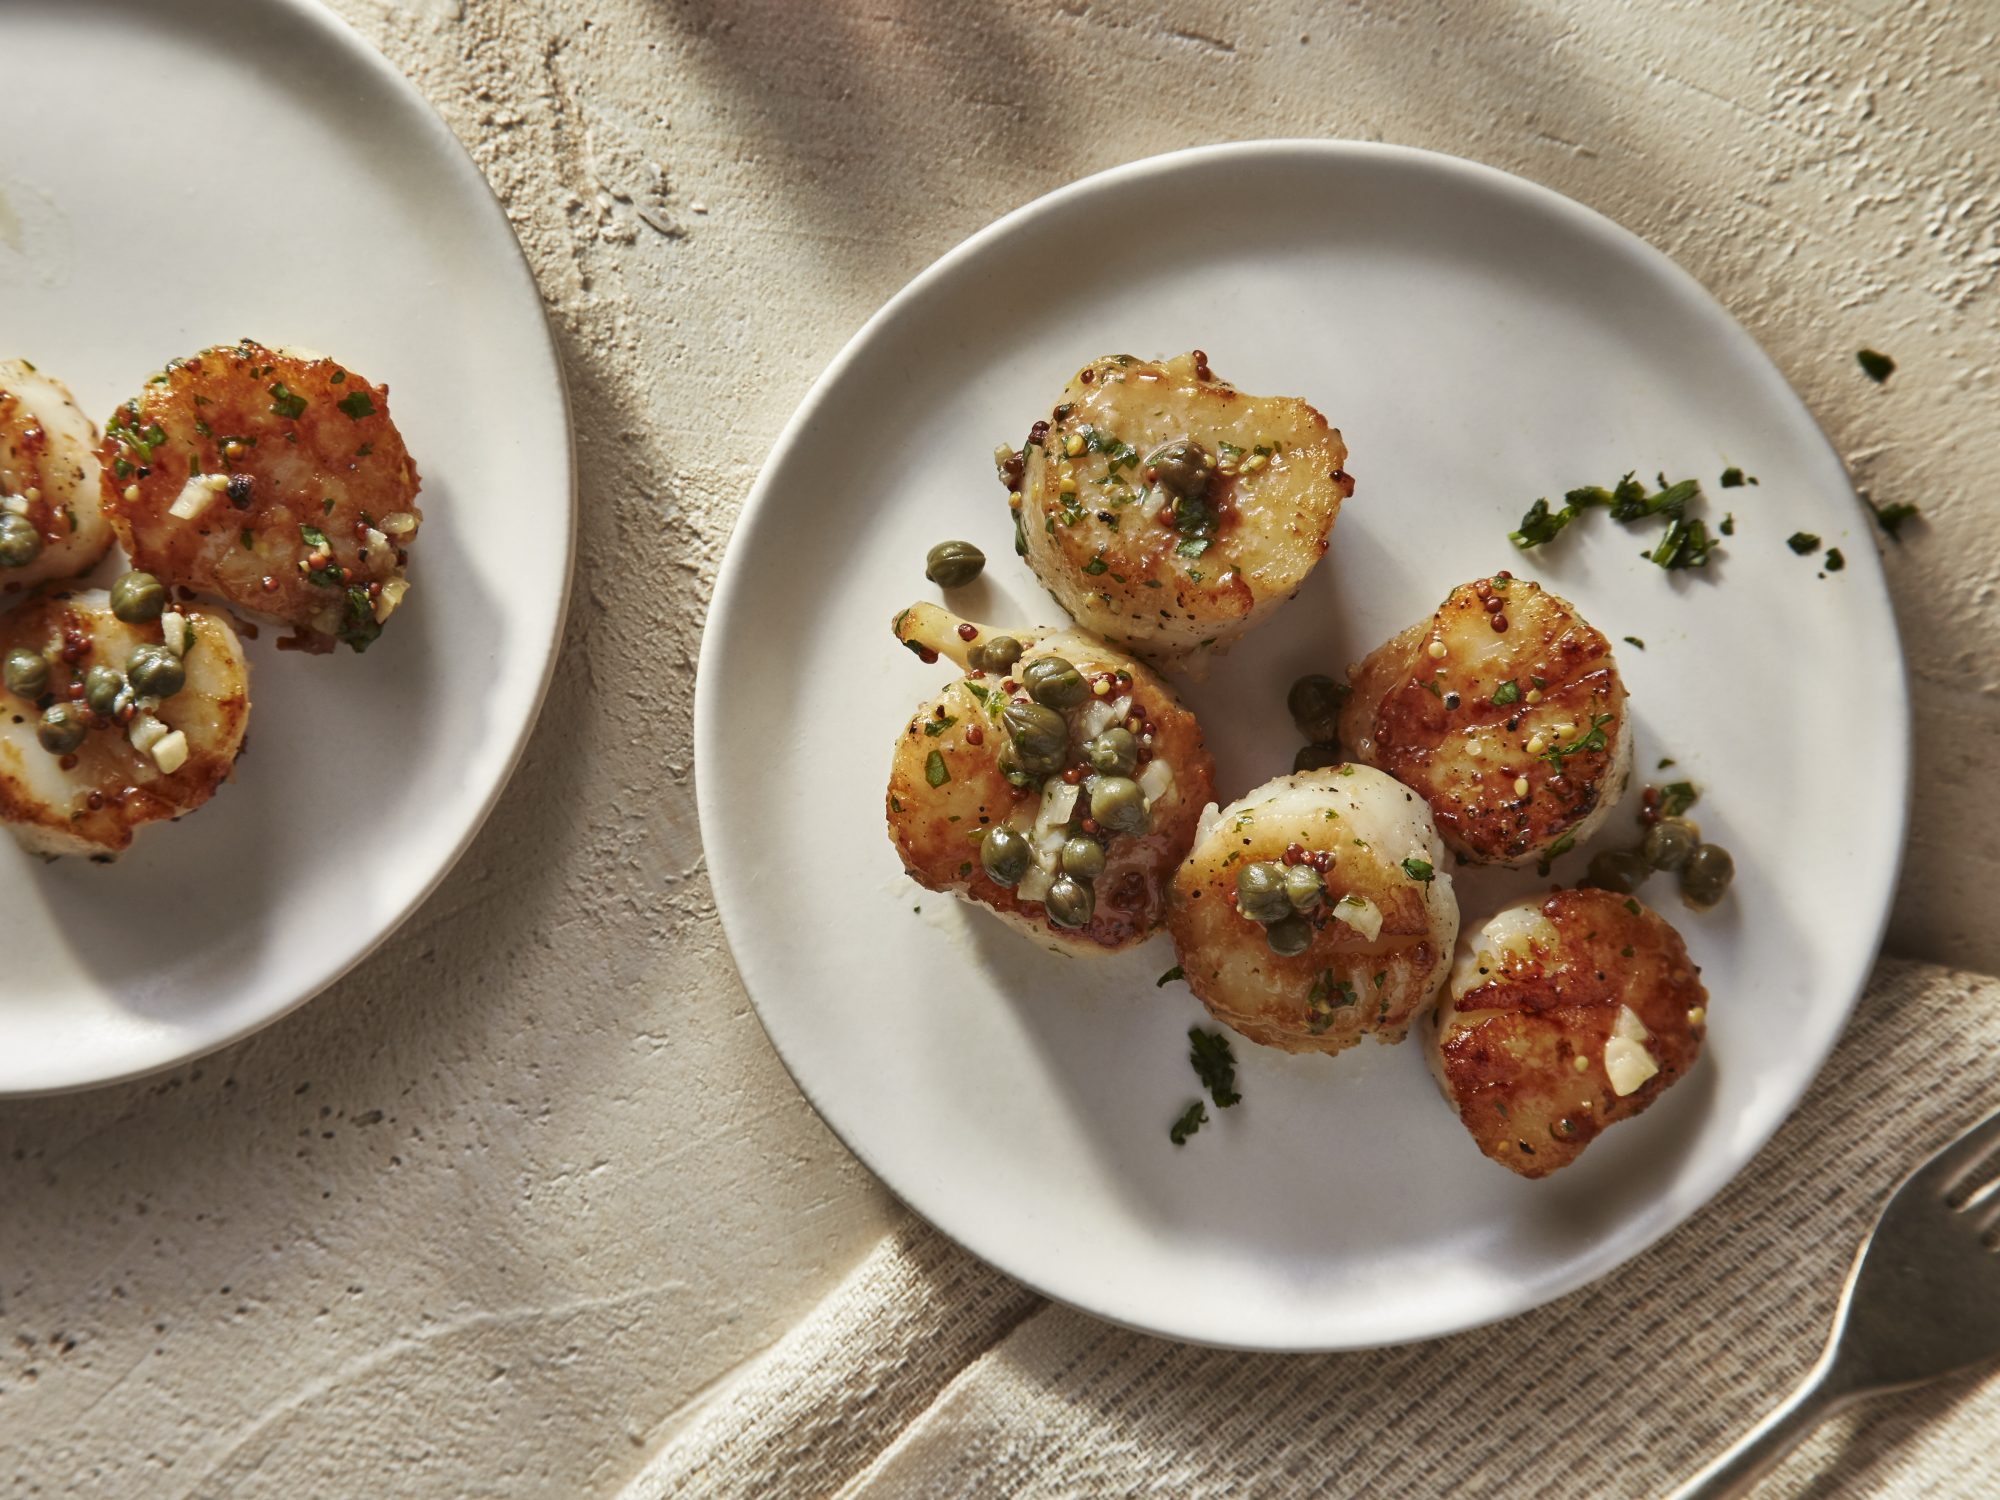 Pan Seared Scallops with Mustard-Caper Sauce